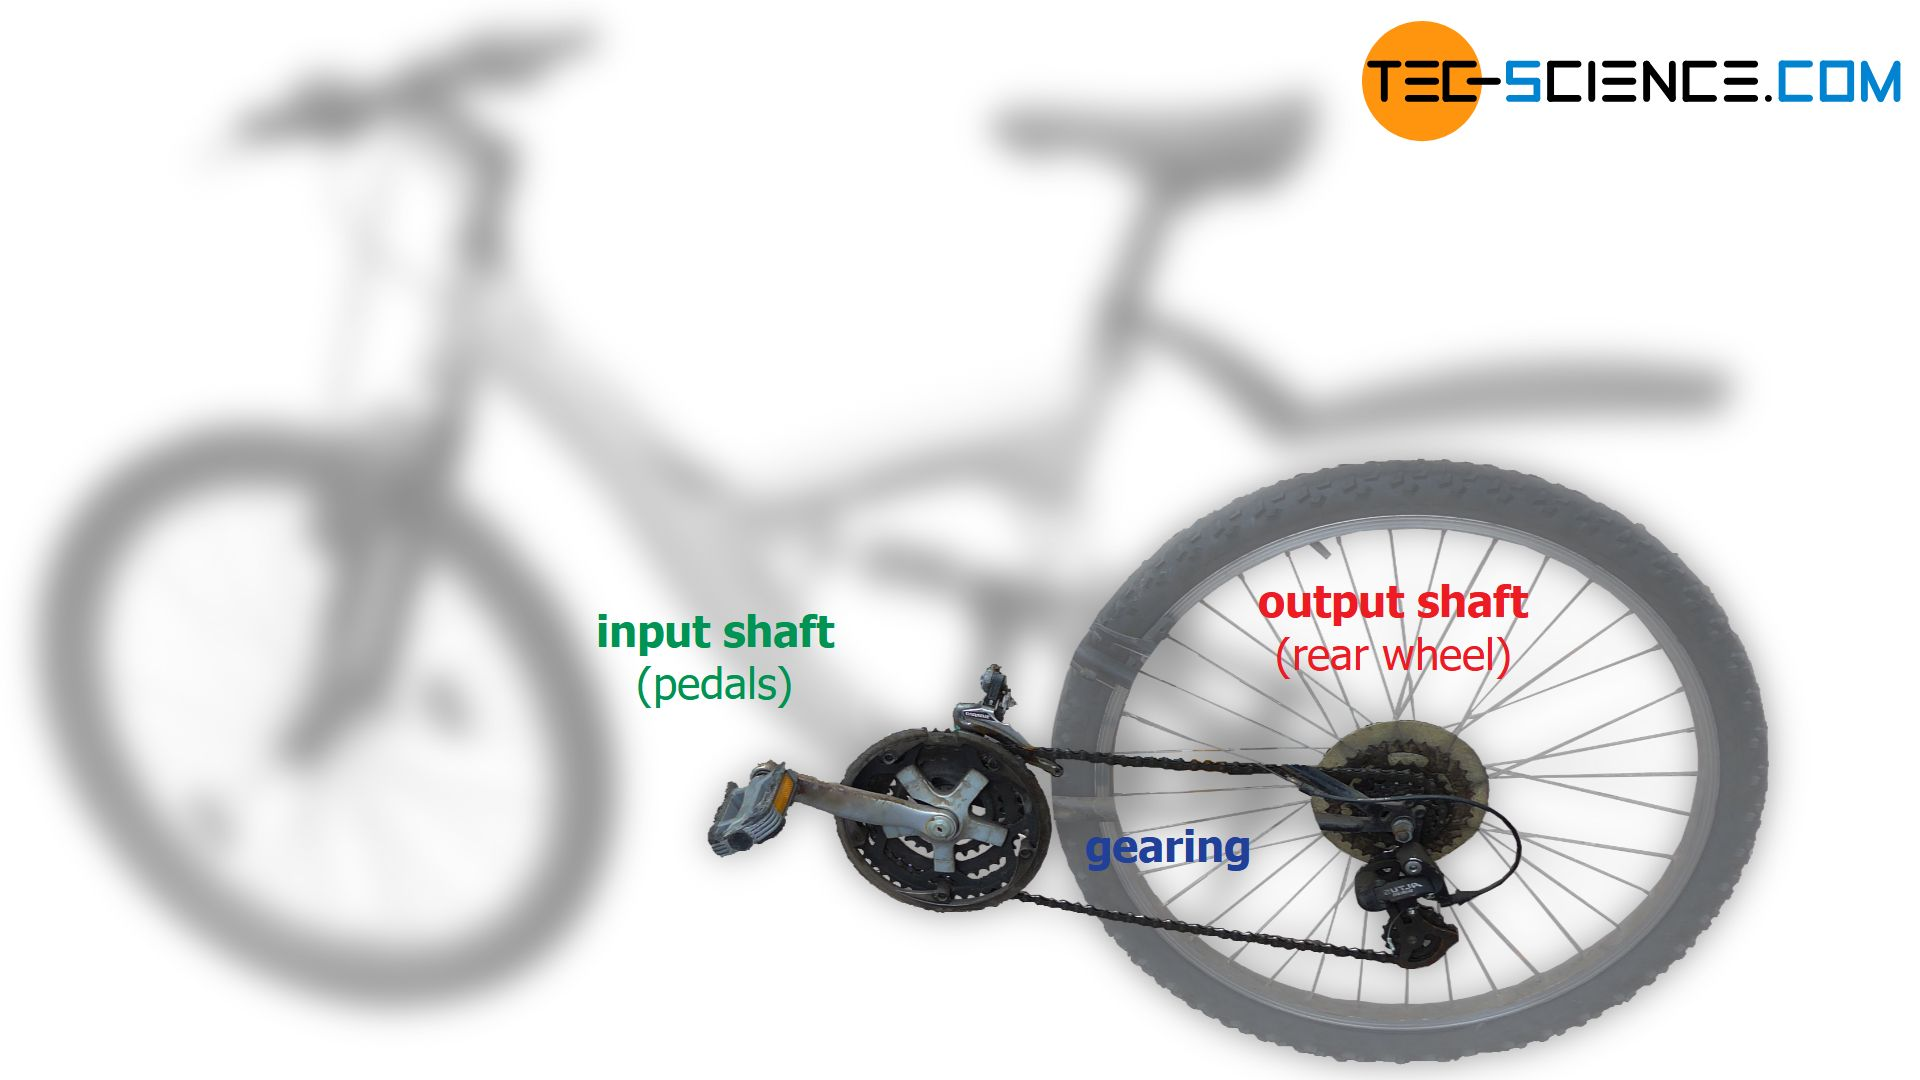 Use of a transmission in a bicycle